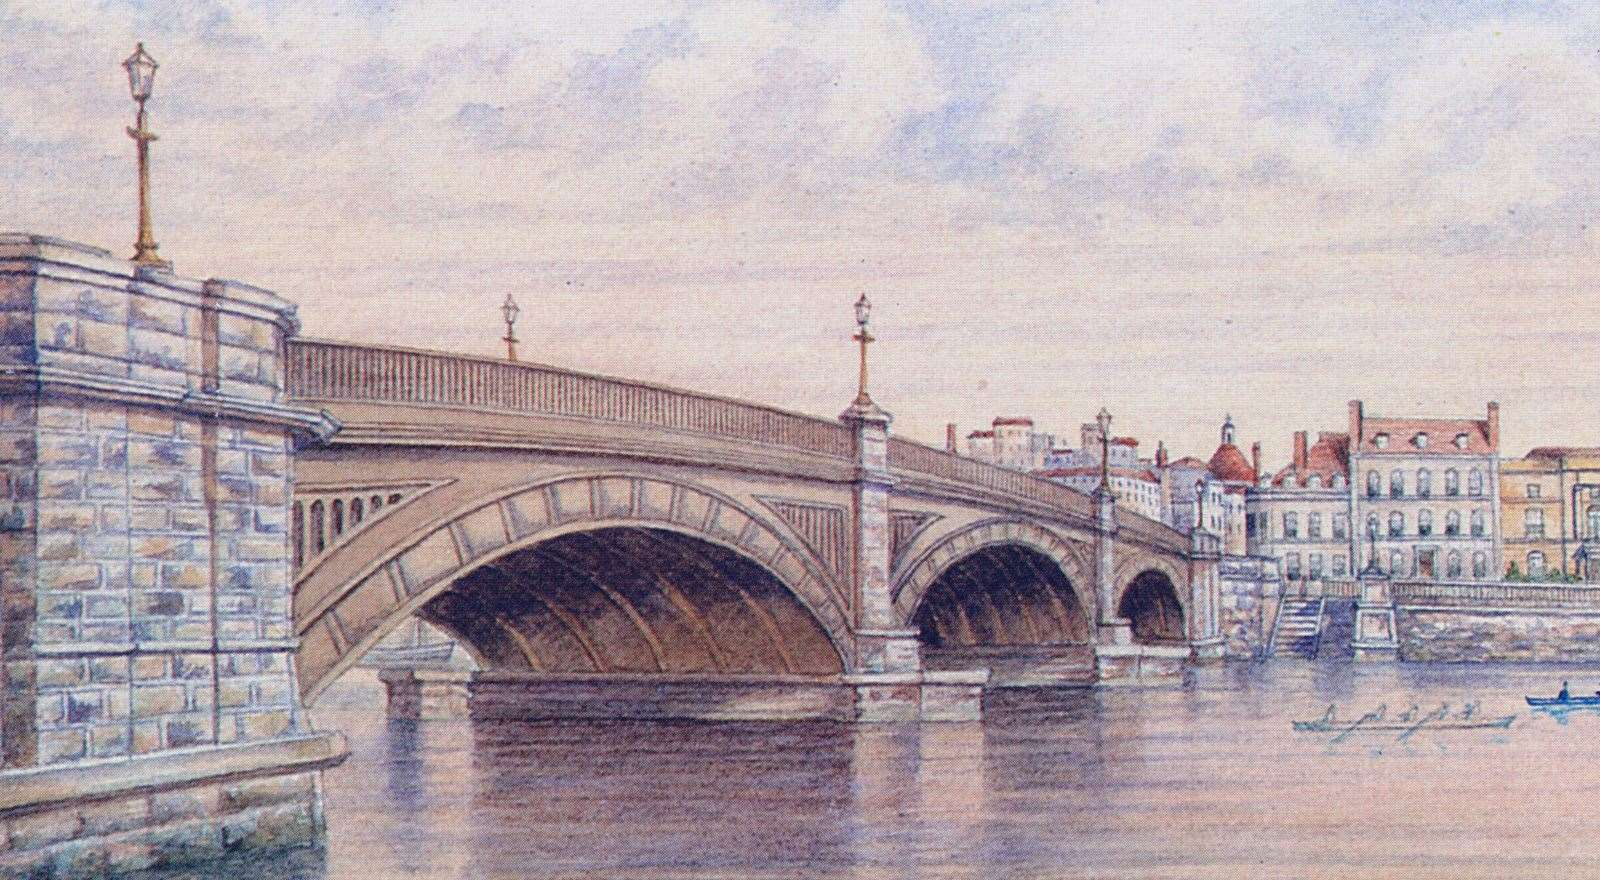 The bridge as it was in Victorian times